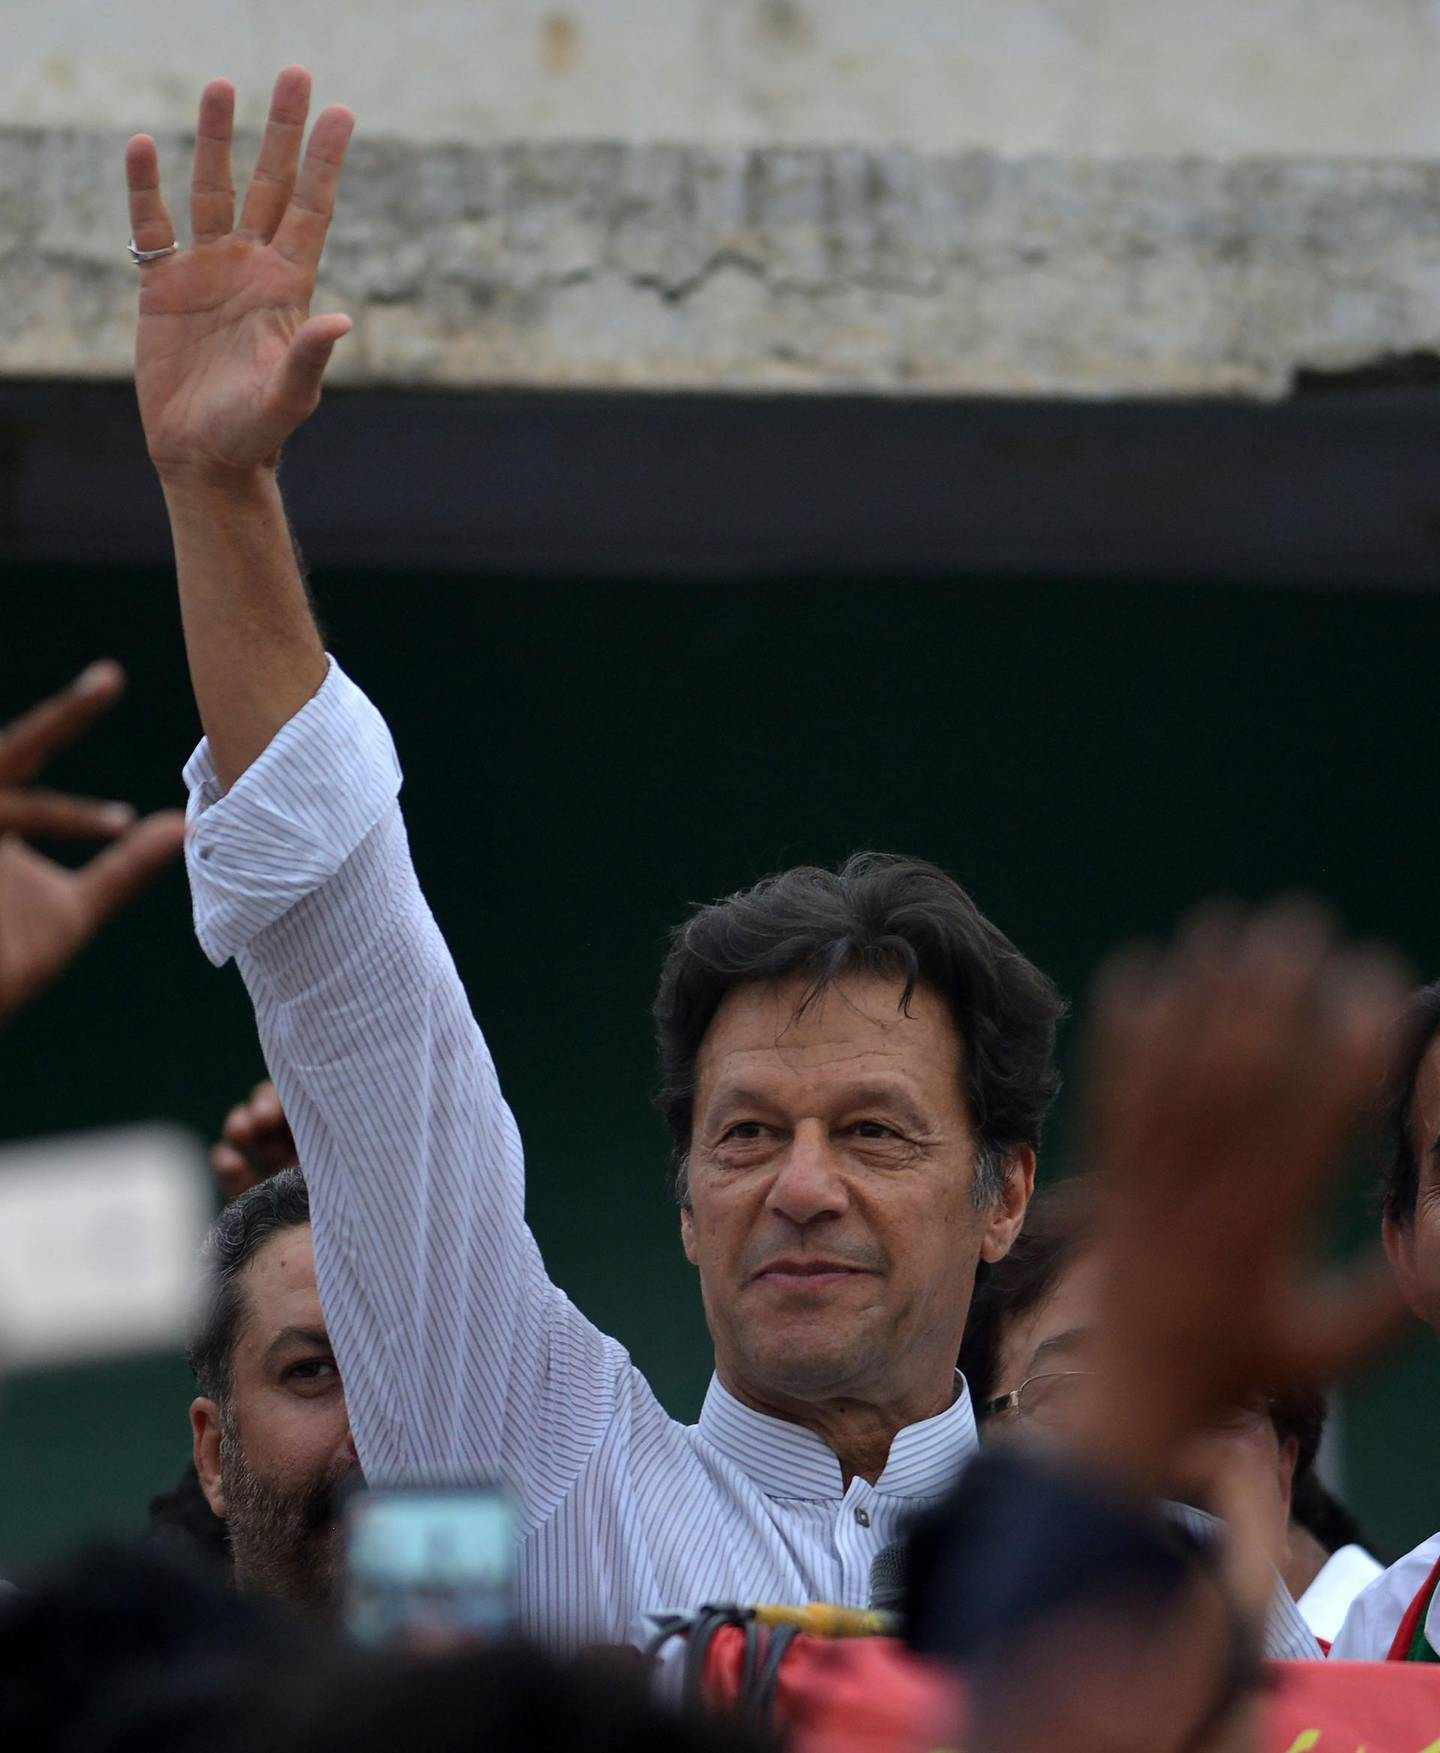 Imran Khan (C), Pakistani cricketer-turned-opposition leader and head of the Pakistan Tehreek-i-Insaf (PTI), delivers a speech during an election campaign in in Mianwali, some 240 kms southwest of Islamabad, on June 24, 2018. Pakistani cricket star-turned-politician Imran Khan on June 24 kicked off his election campaign by staging a major rally and promising sweeping changes in the country, once his party win the elections. / AFP / AAMIR QURESHI